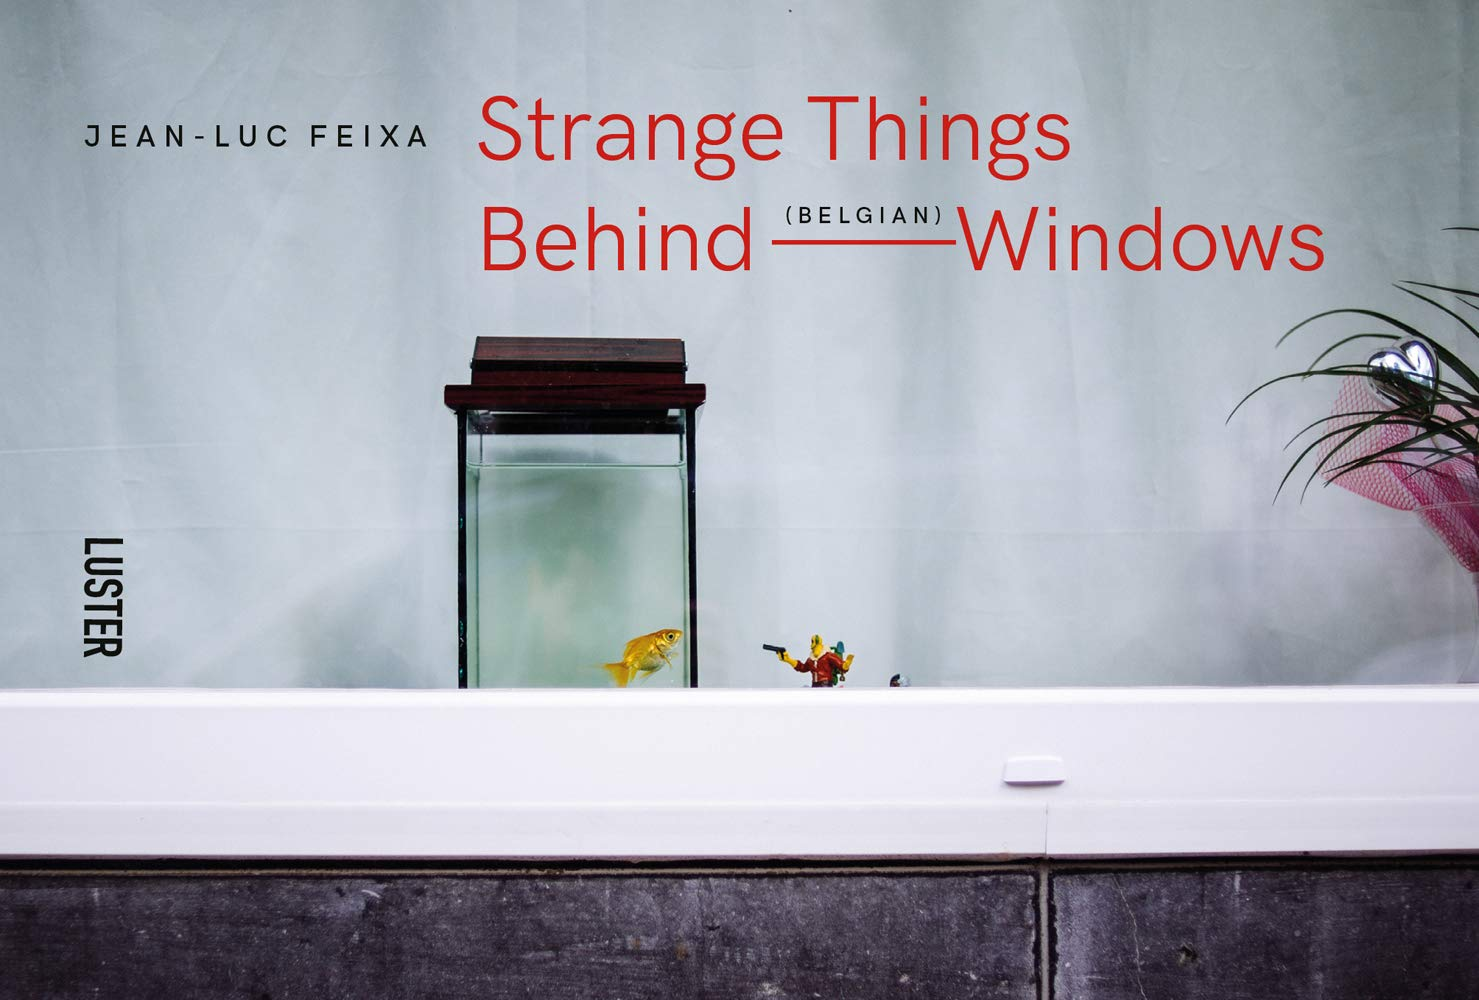 Strange things behind (Belgian) windows: Amazon.es: Feixa, Jean-Luc: Libros en idiomas extranjeros